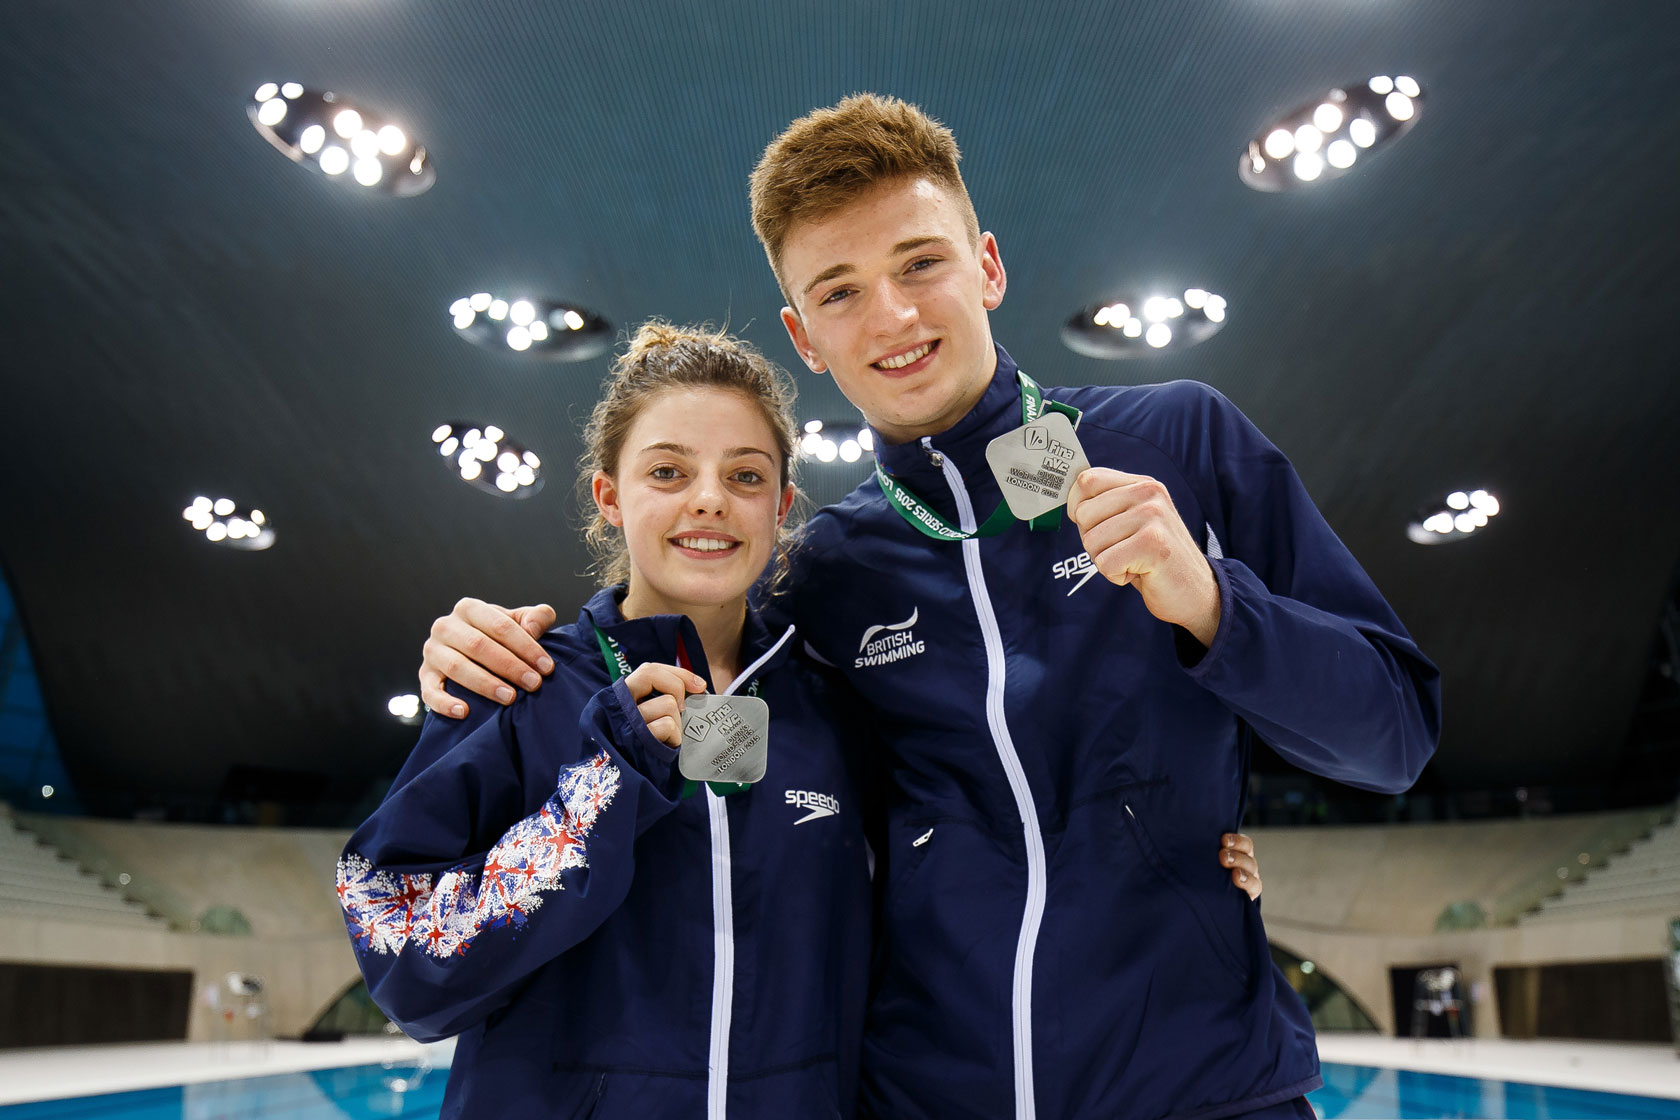 Matty Lee and Georgia Ward win World Series medal